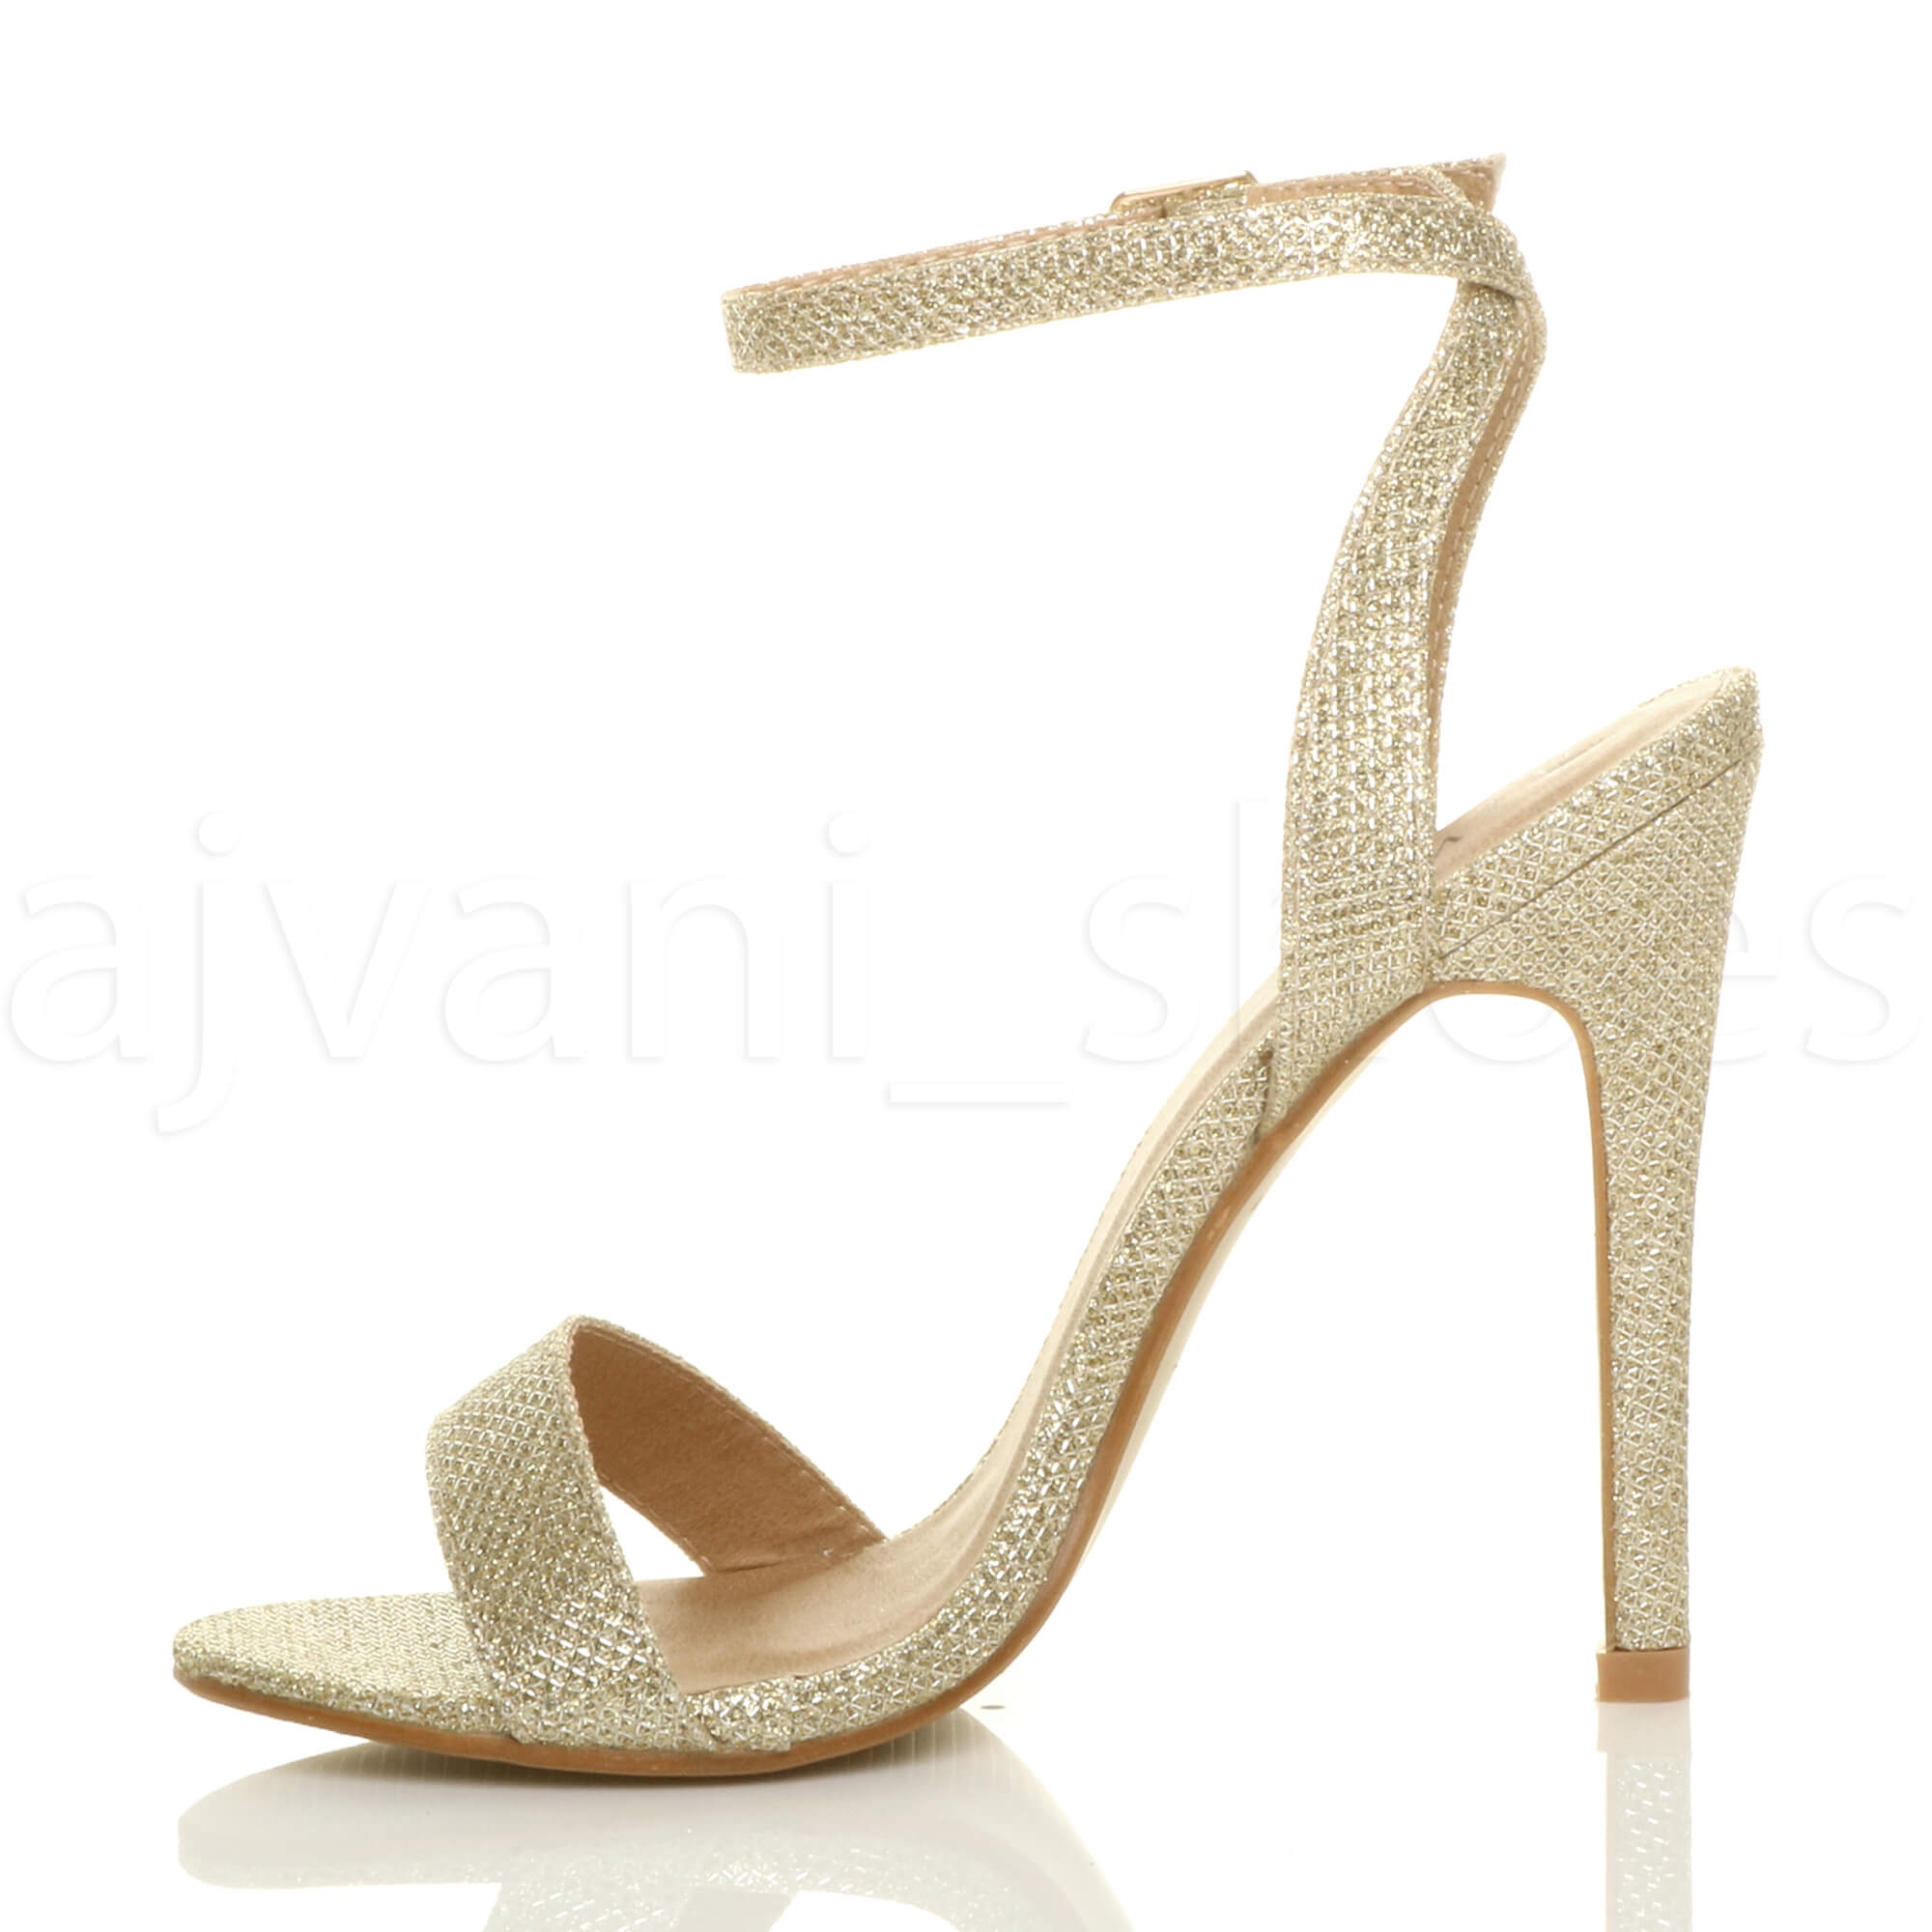 WOMENS-LADIES-HIGH-HEEL-ANKLE-STRAP-BARELY-THERE-STRAPPY-SANDALS-SHOES-SIZE thumbnail 46